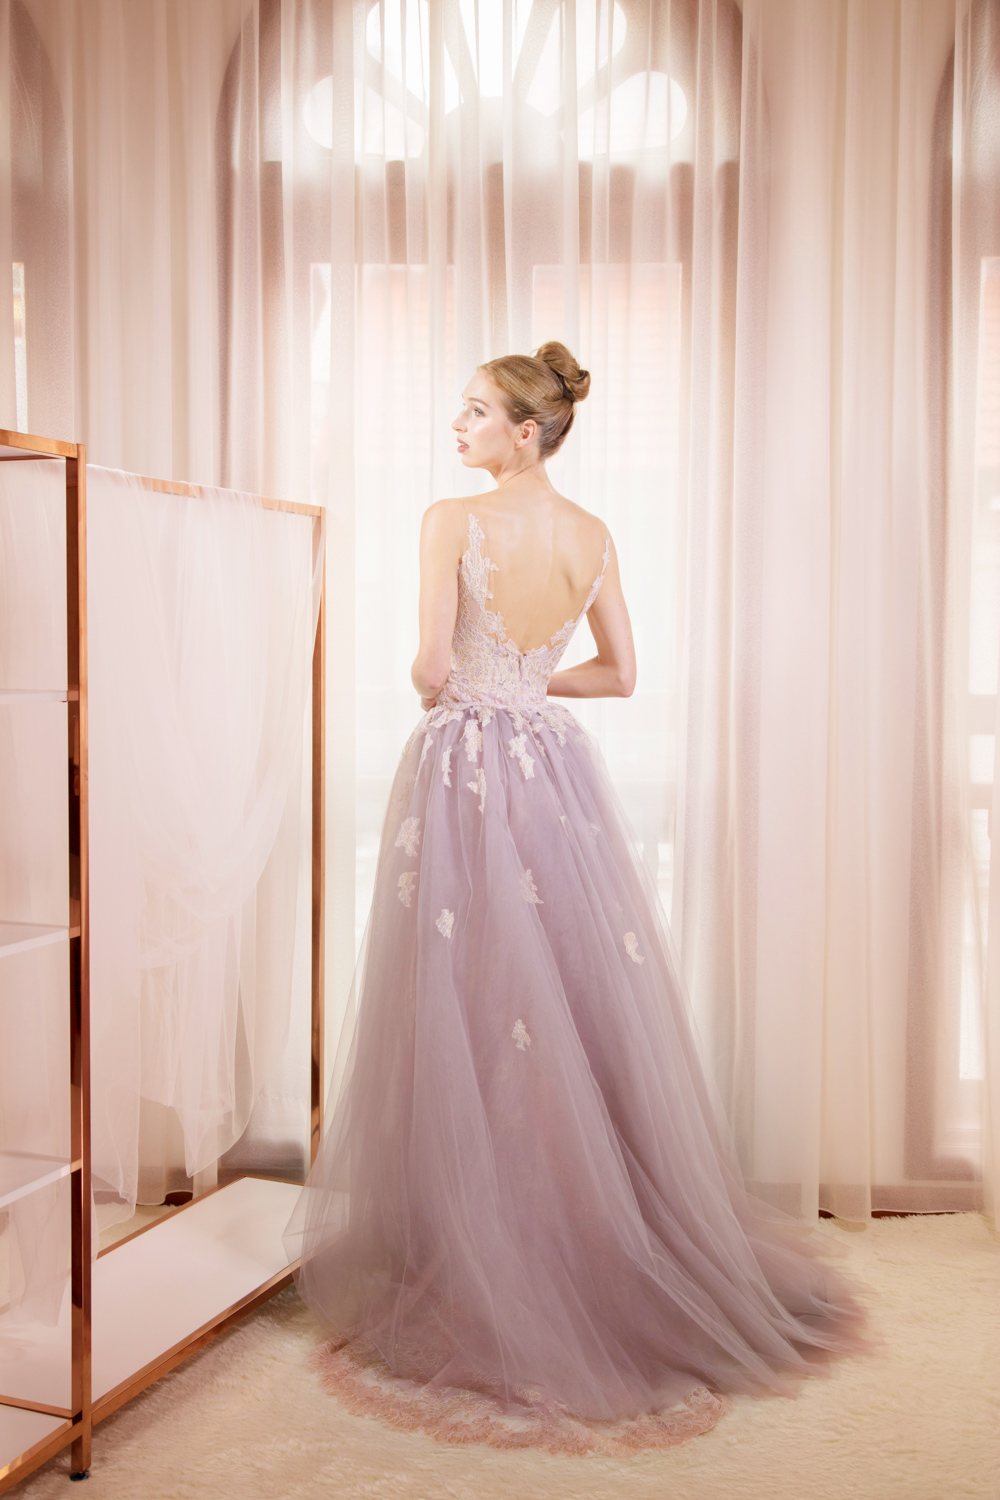 Low back lilac evening gown by CCM Wedding